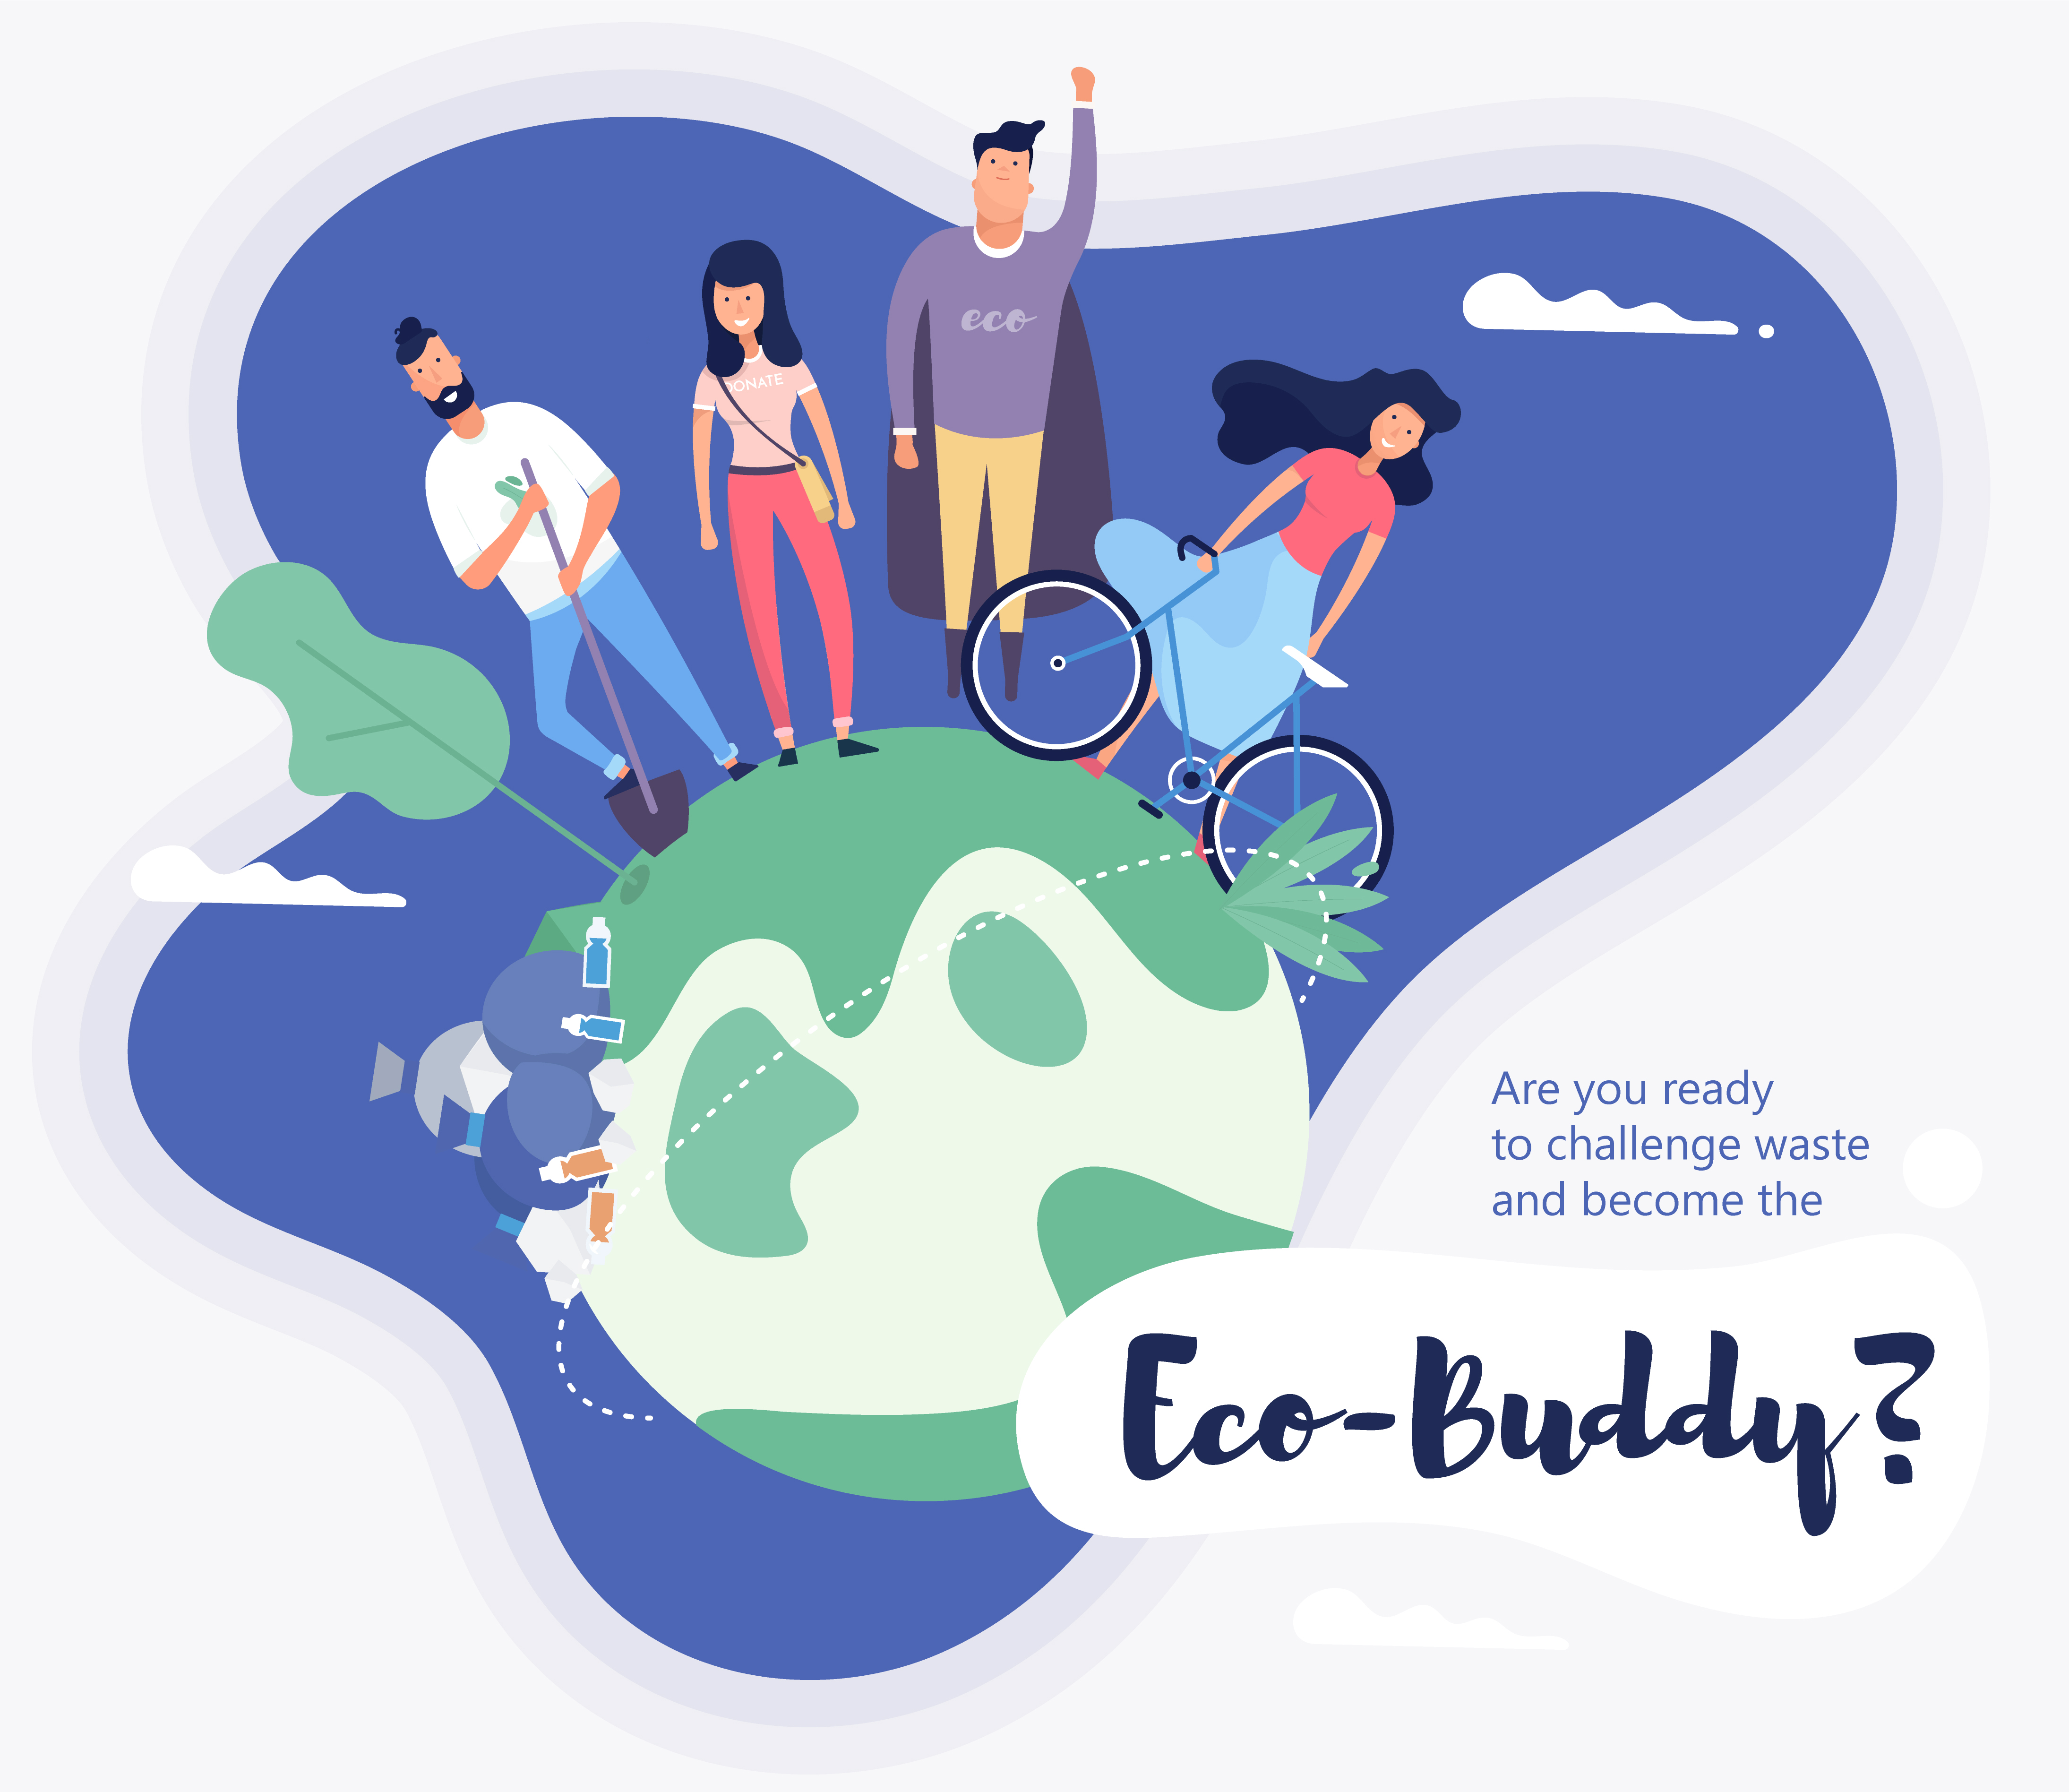 Eco Buddy